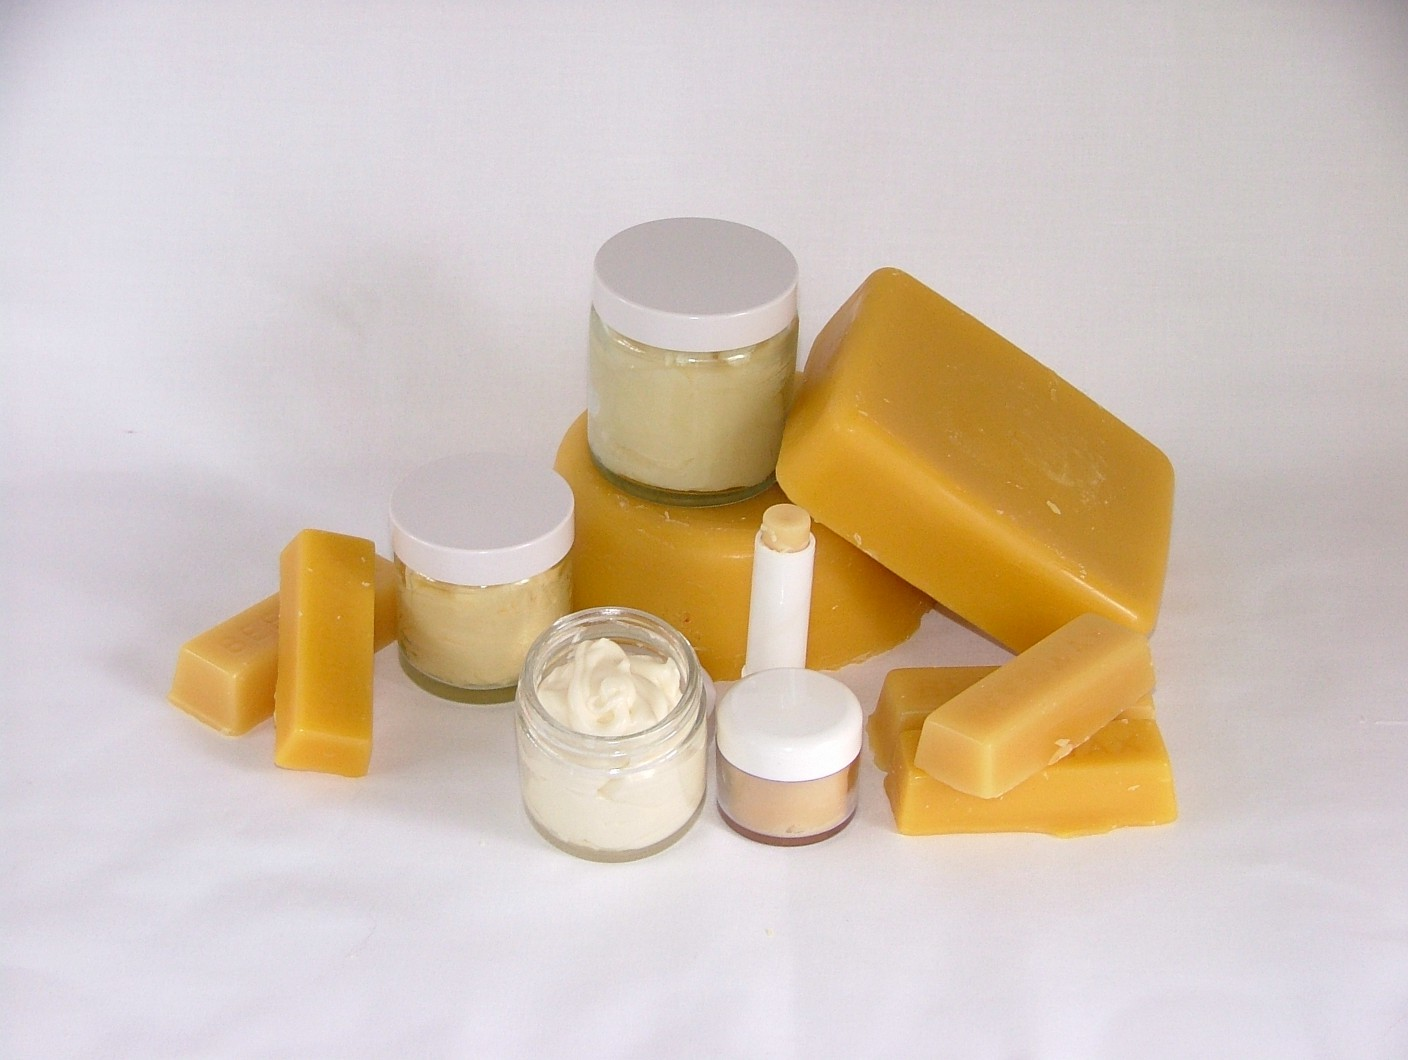 beeswax and skin creams